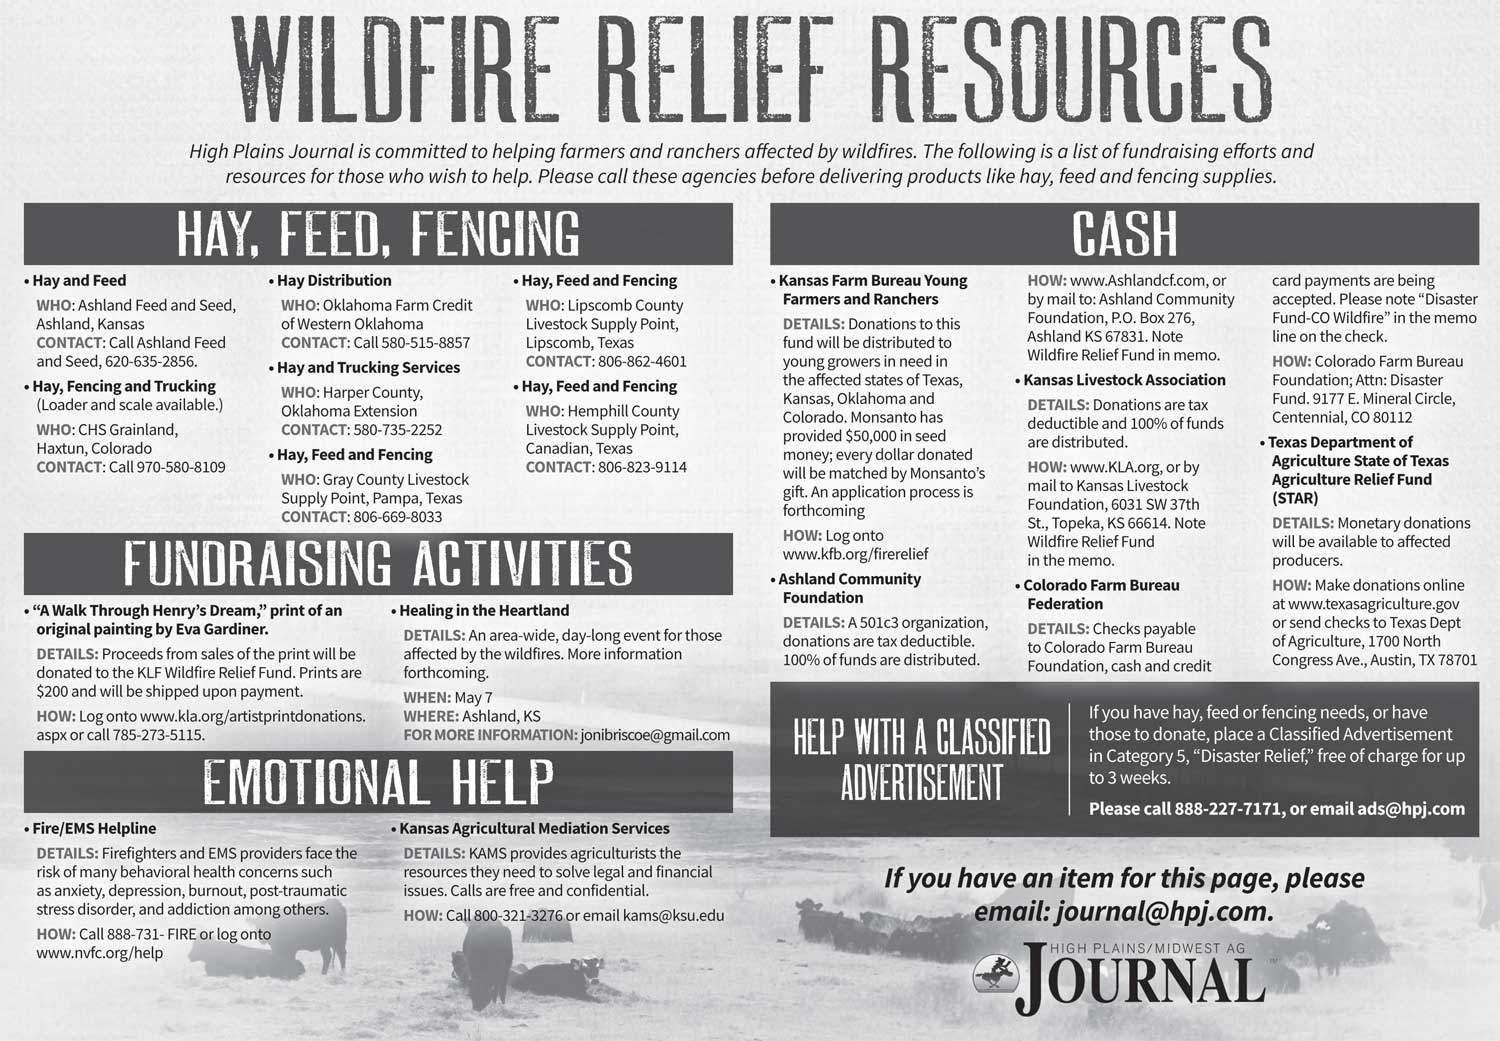 Wildfire Relief Resources from the High Plains Journal